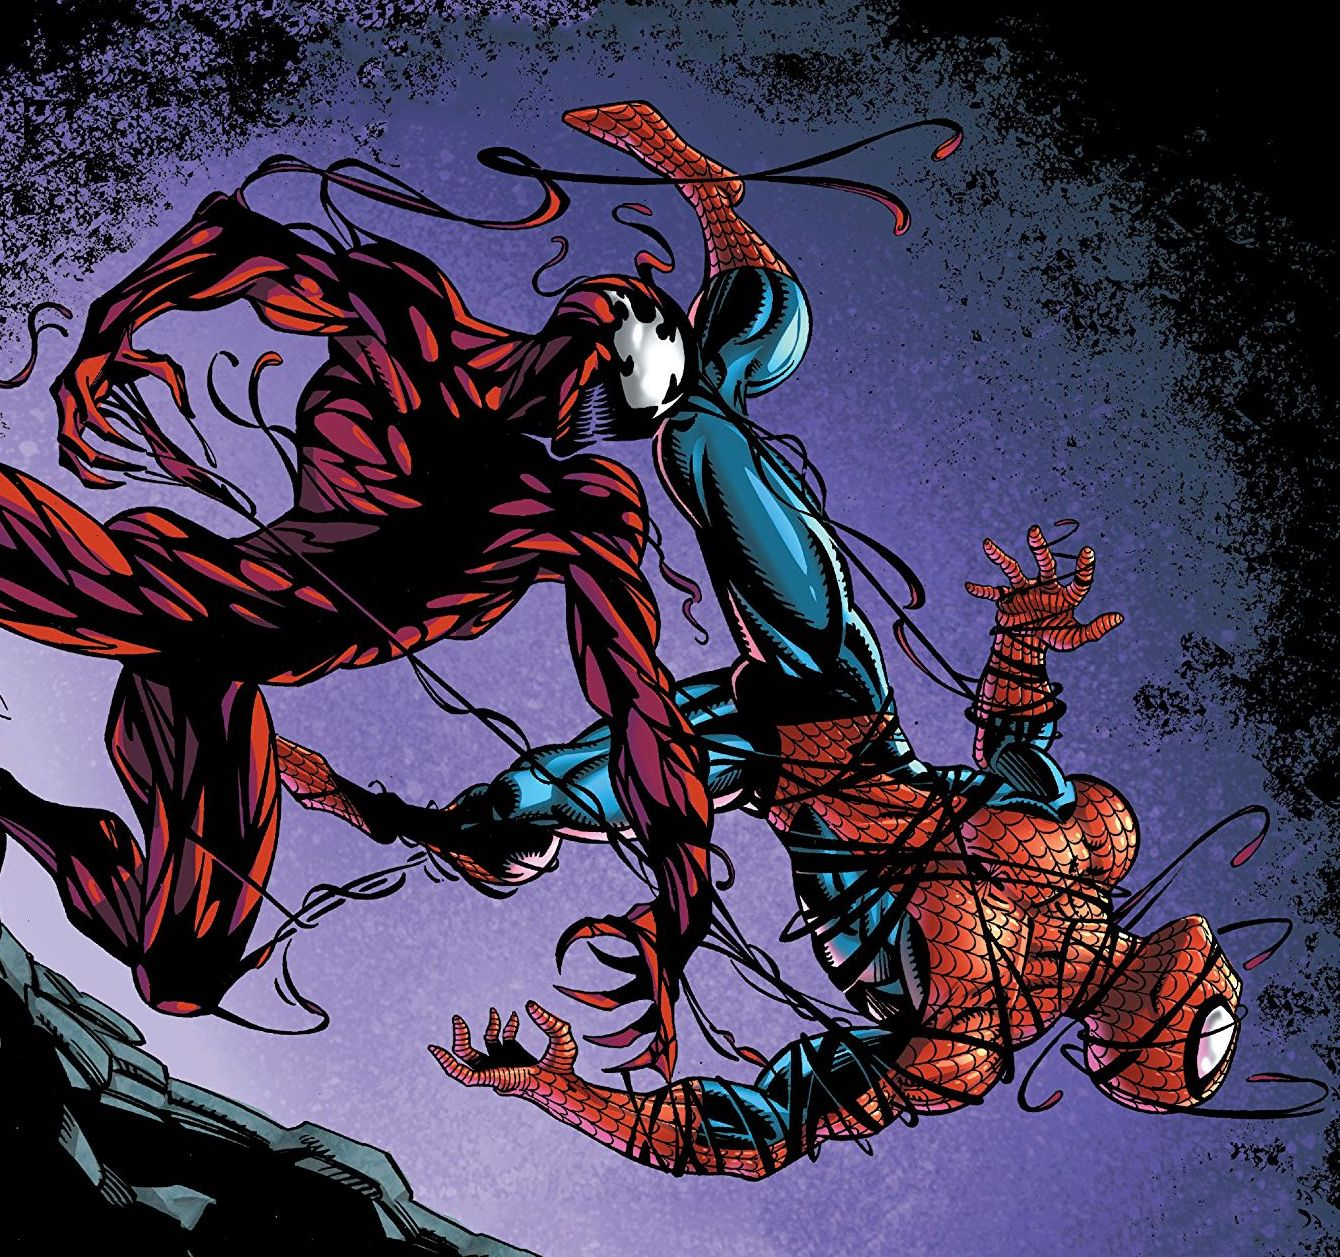 So many folks have hosted Carnage, from Silver Surfer to a Spidey clone!